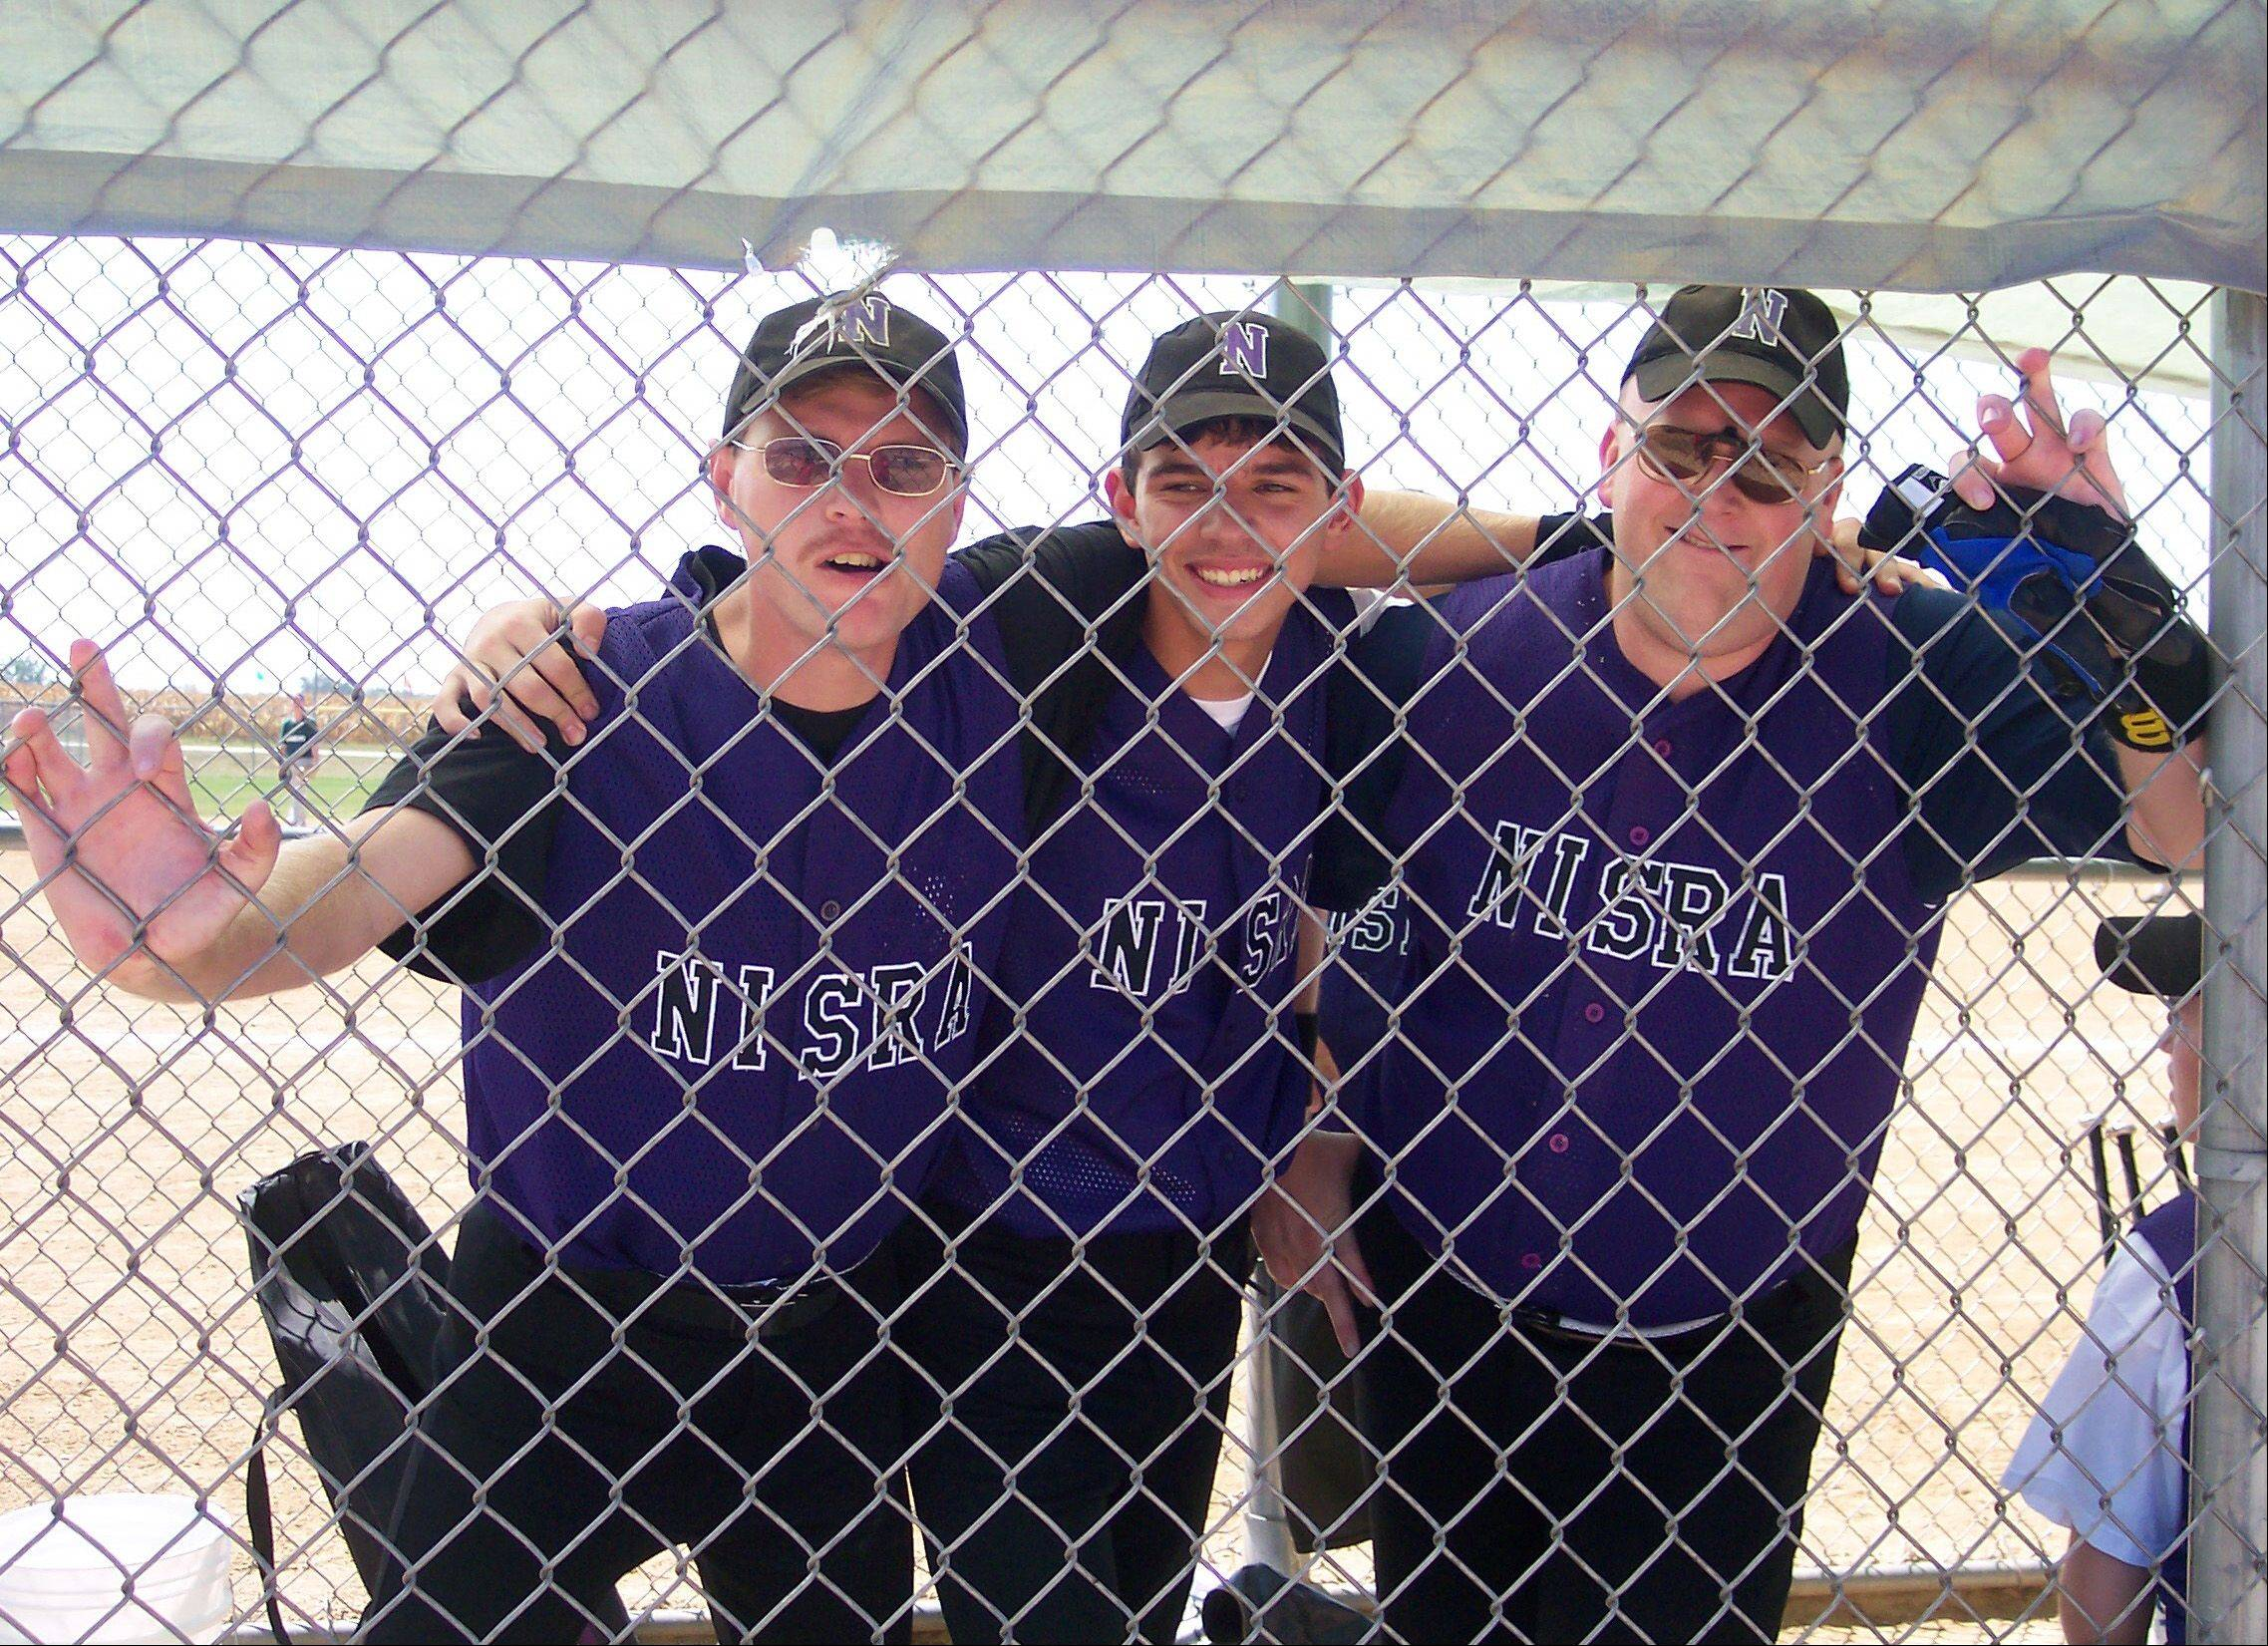 Players from the NISRA team practice for the upcoming Special Olympics national softball tournament in Elgin.